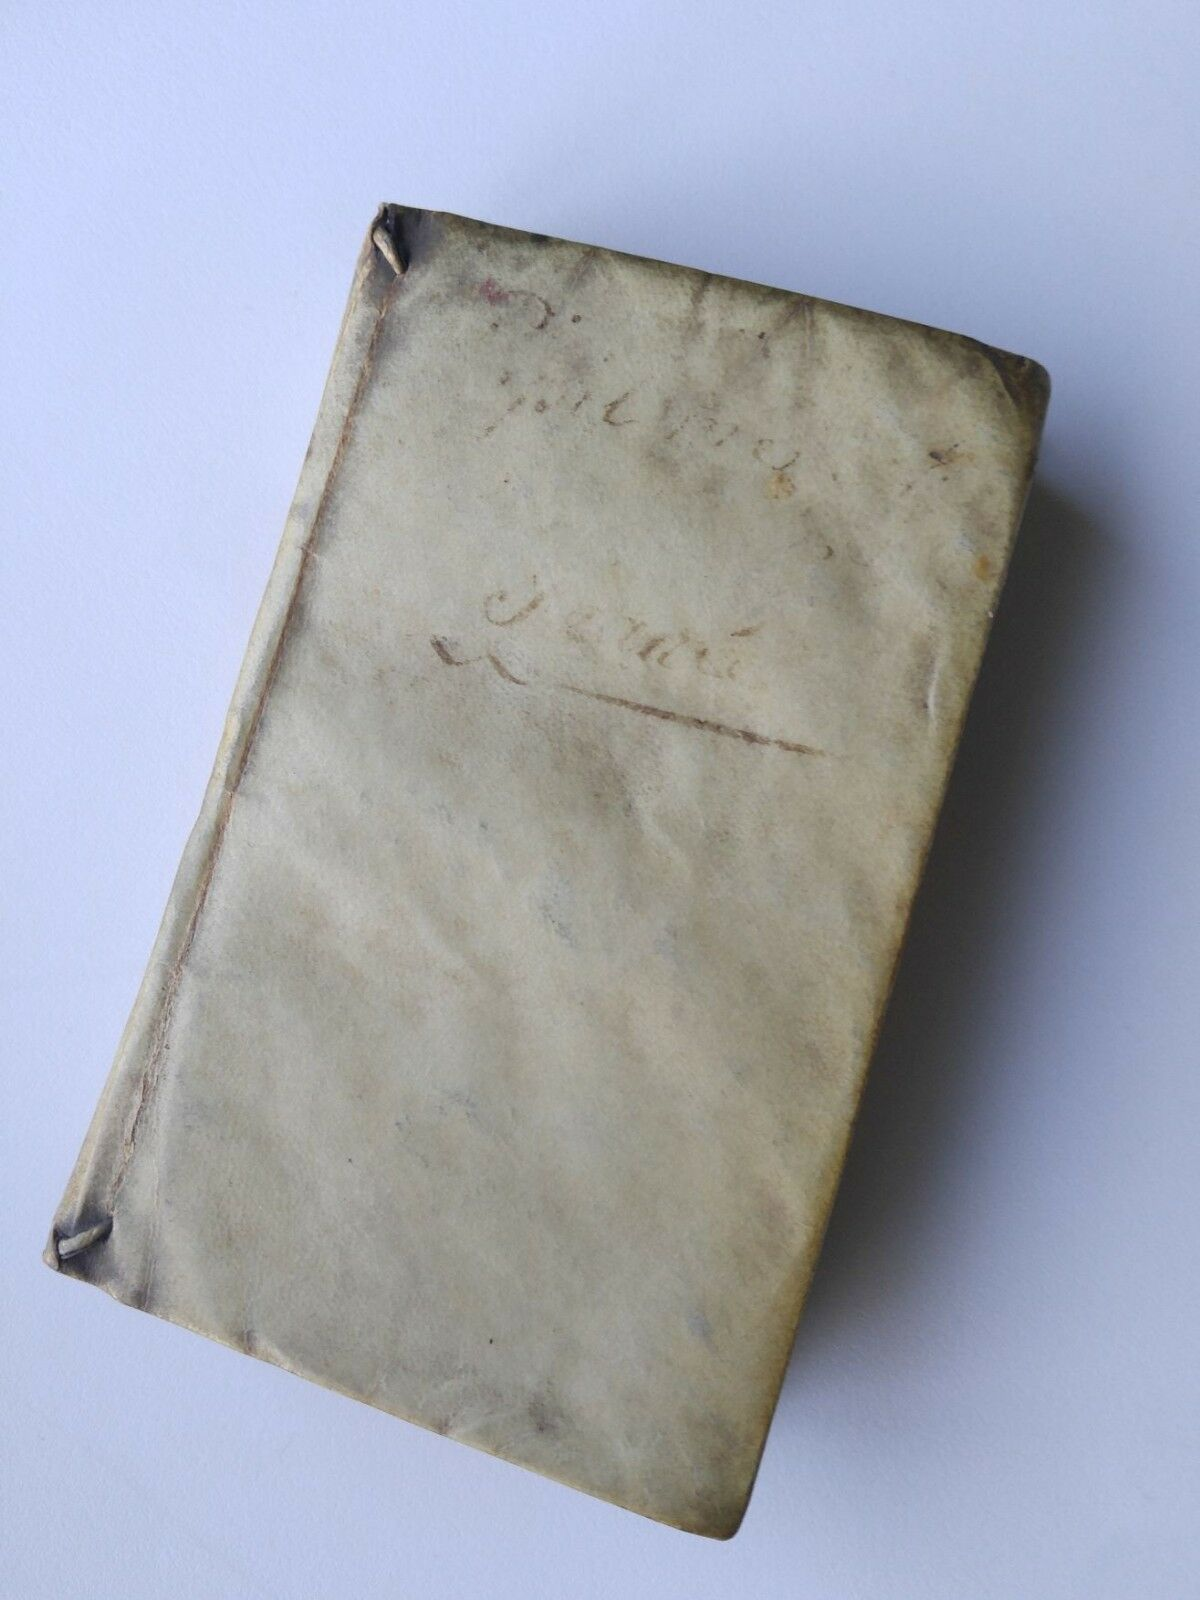 RARE ANTIQUE BOOK L'HISTOIRE DE FRANCE HISTORY OF FRANCE FROM 1634